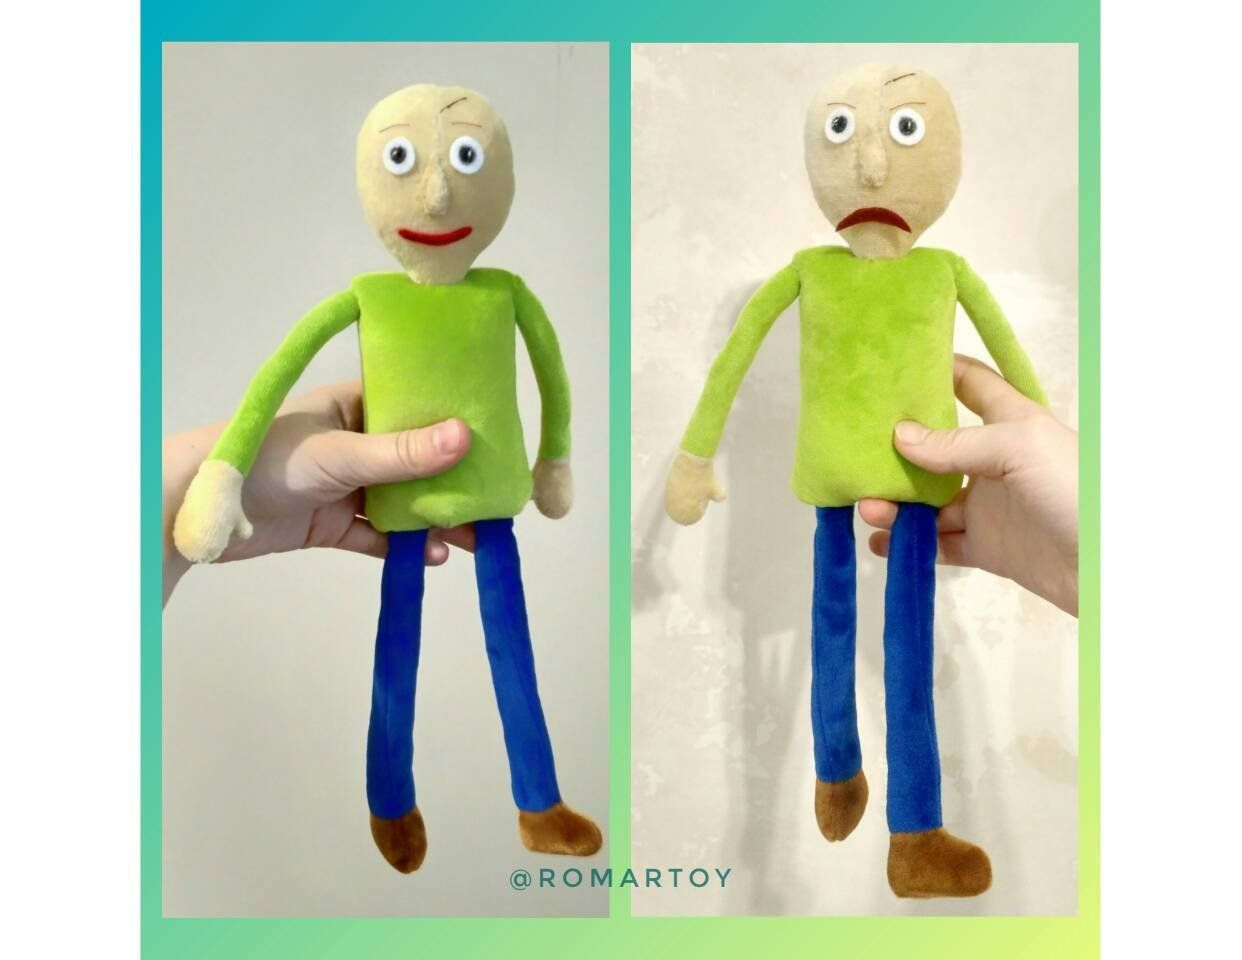 Baldi S Basics In Education And Learning Unofficial Plush Toy